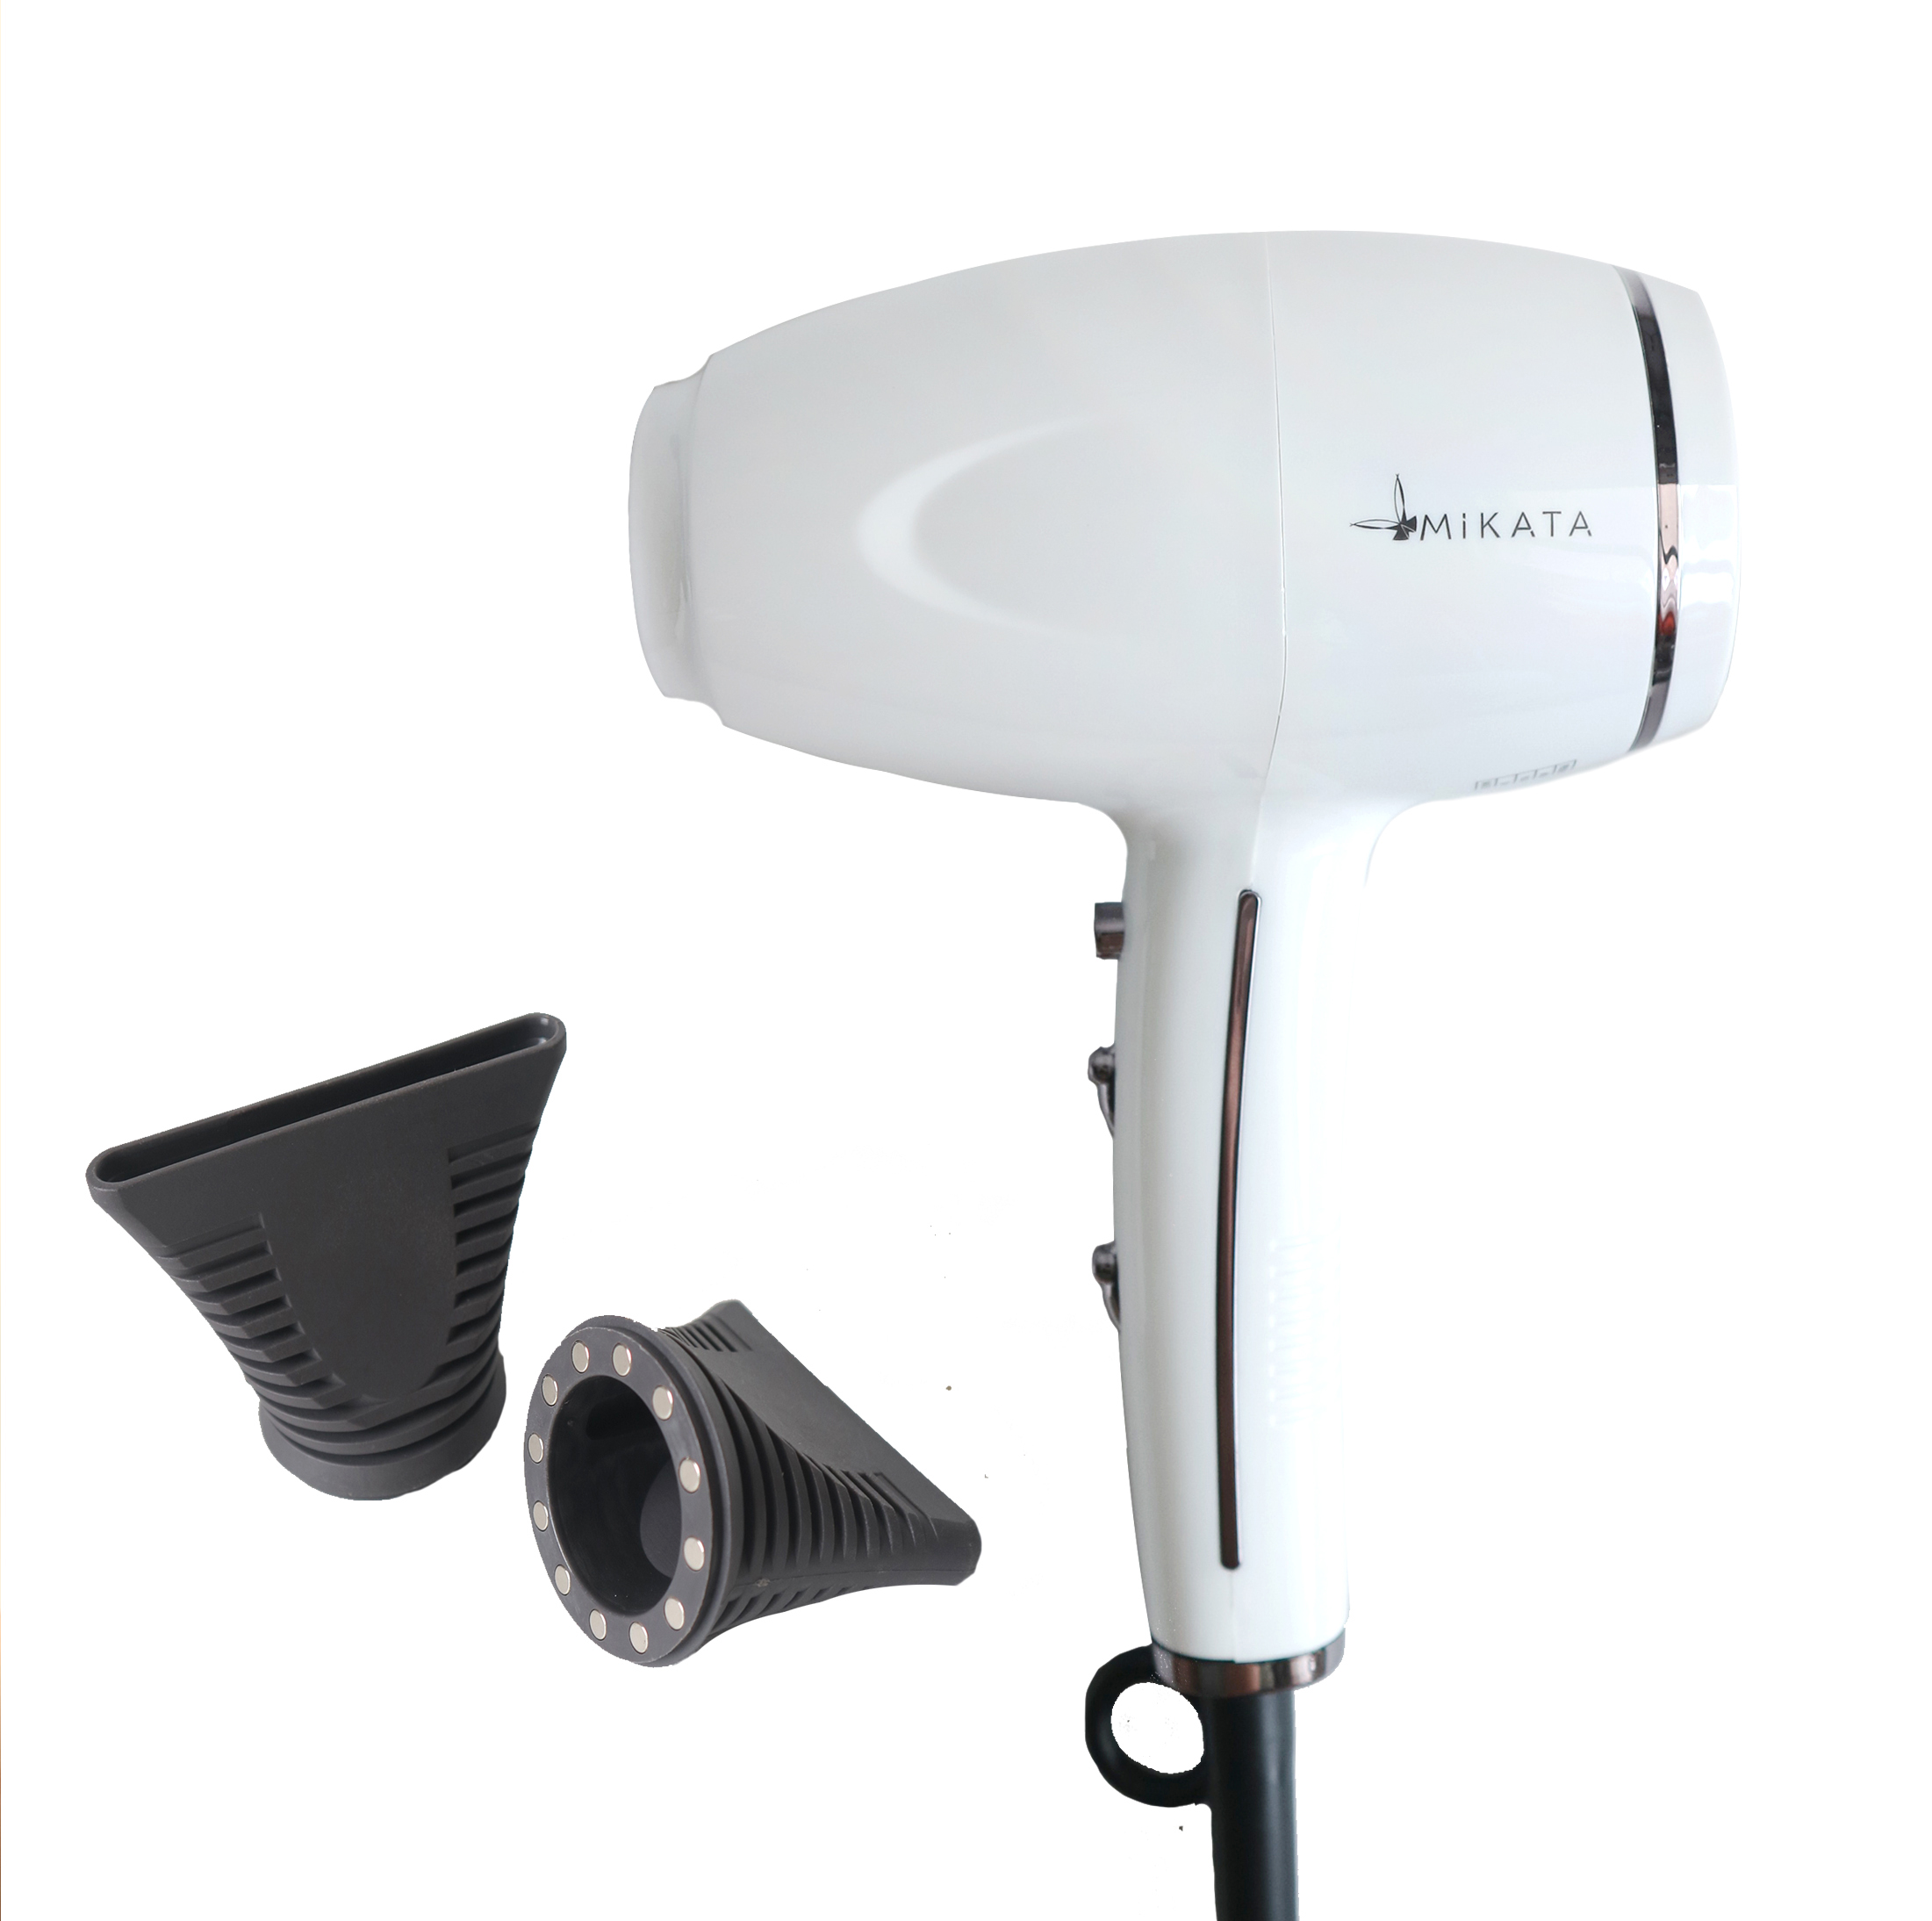 Mikata – M9 Ionic Turbo Hair Dryer